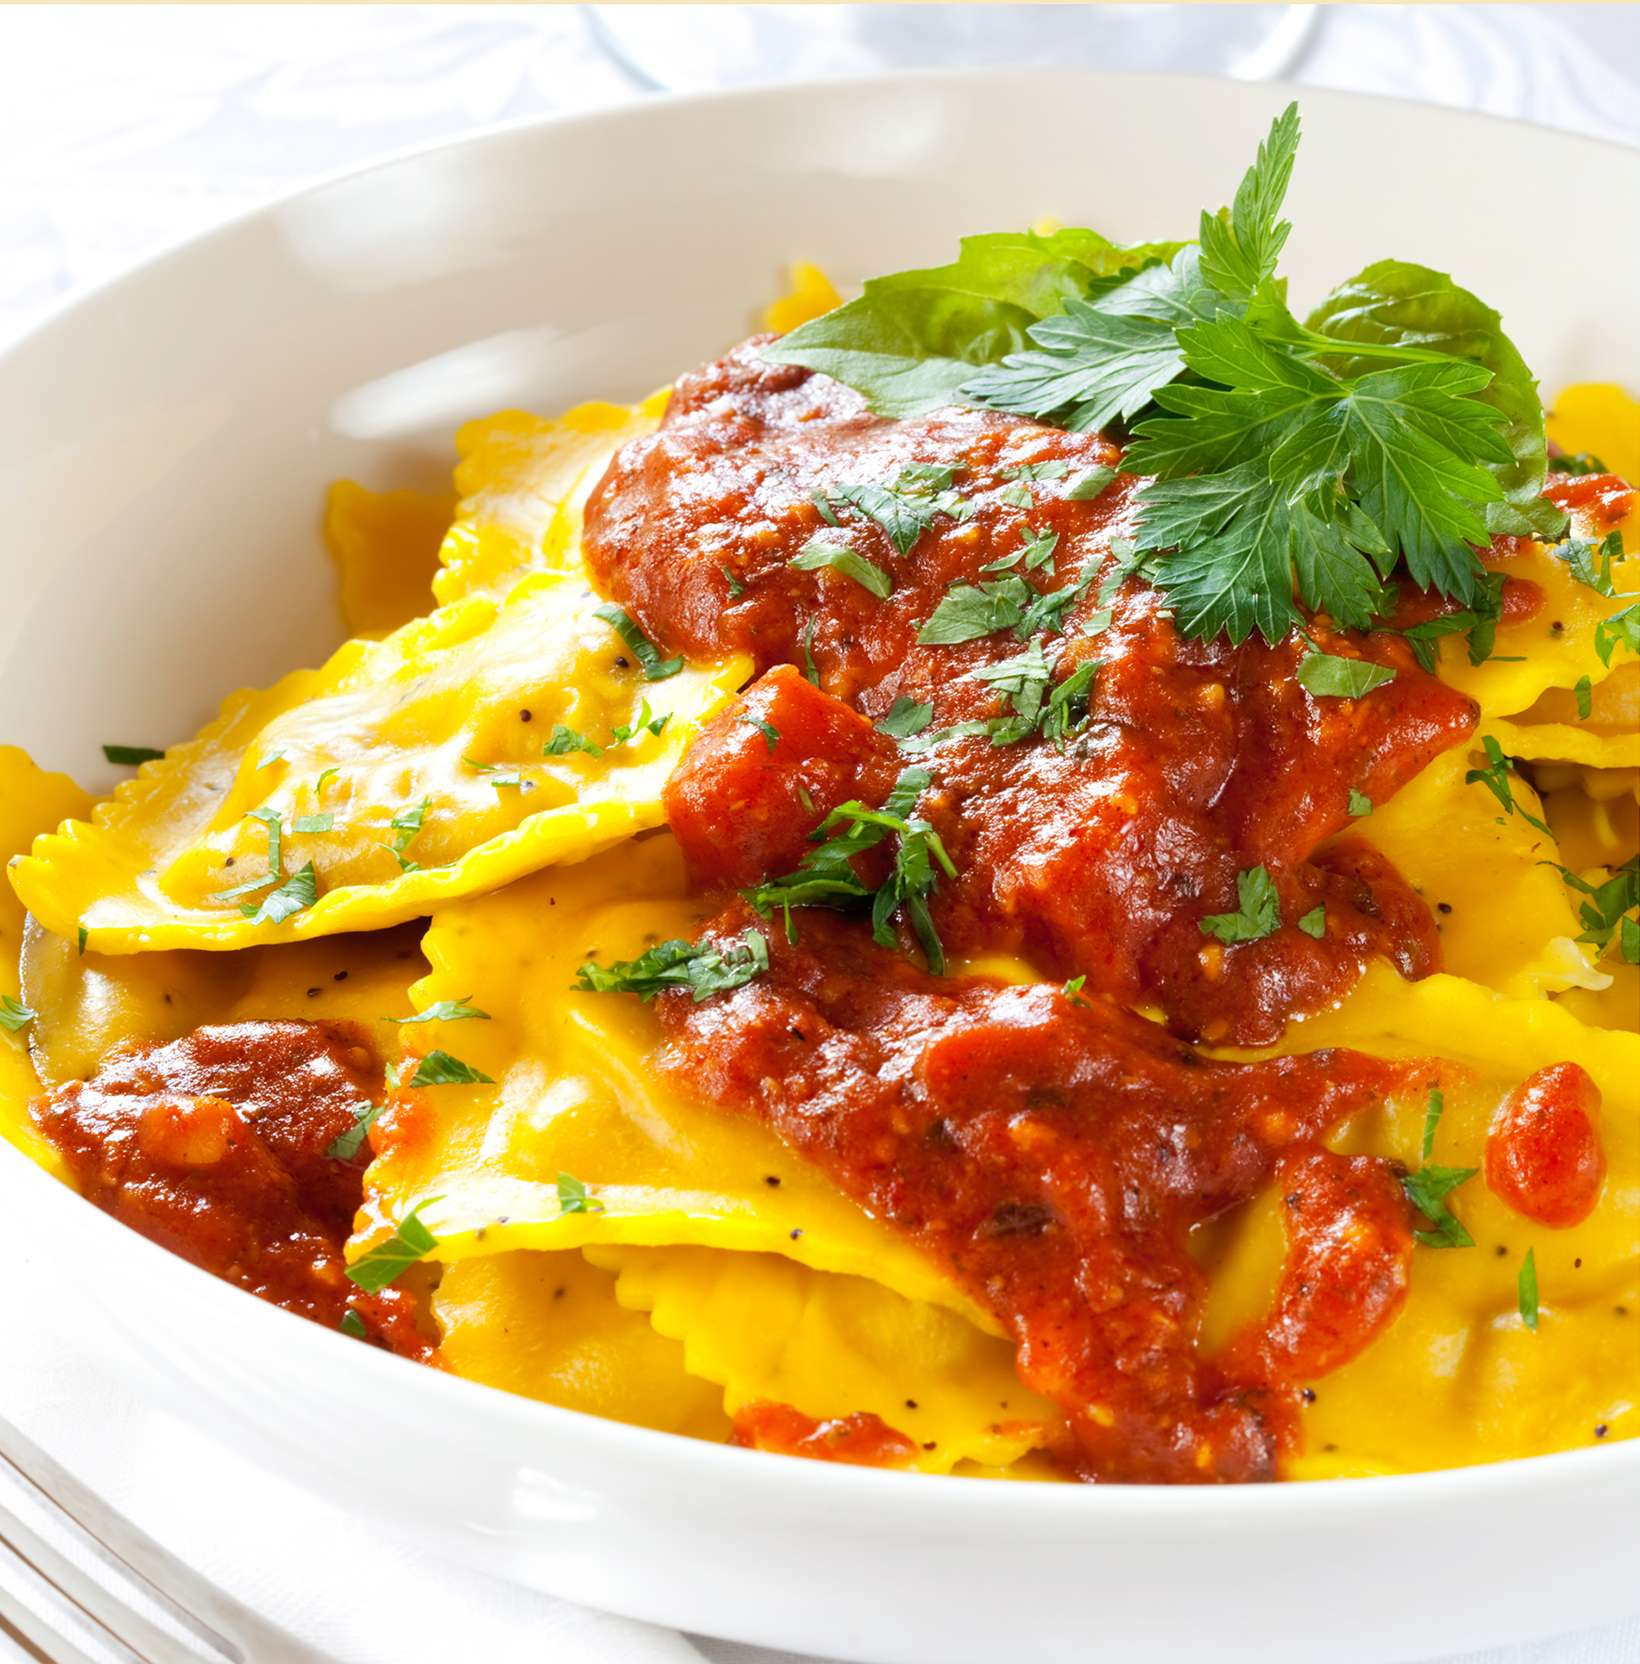 Ravioli with Goats' Cheese and Meat